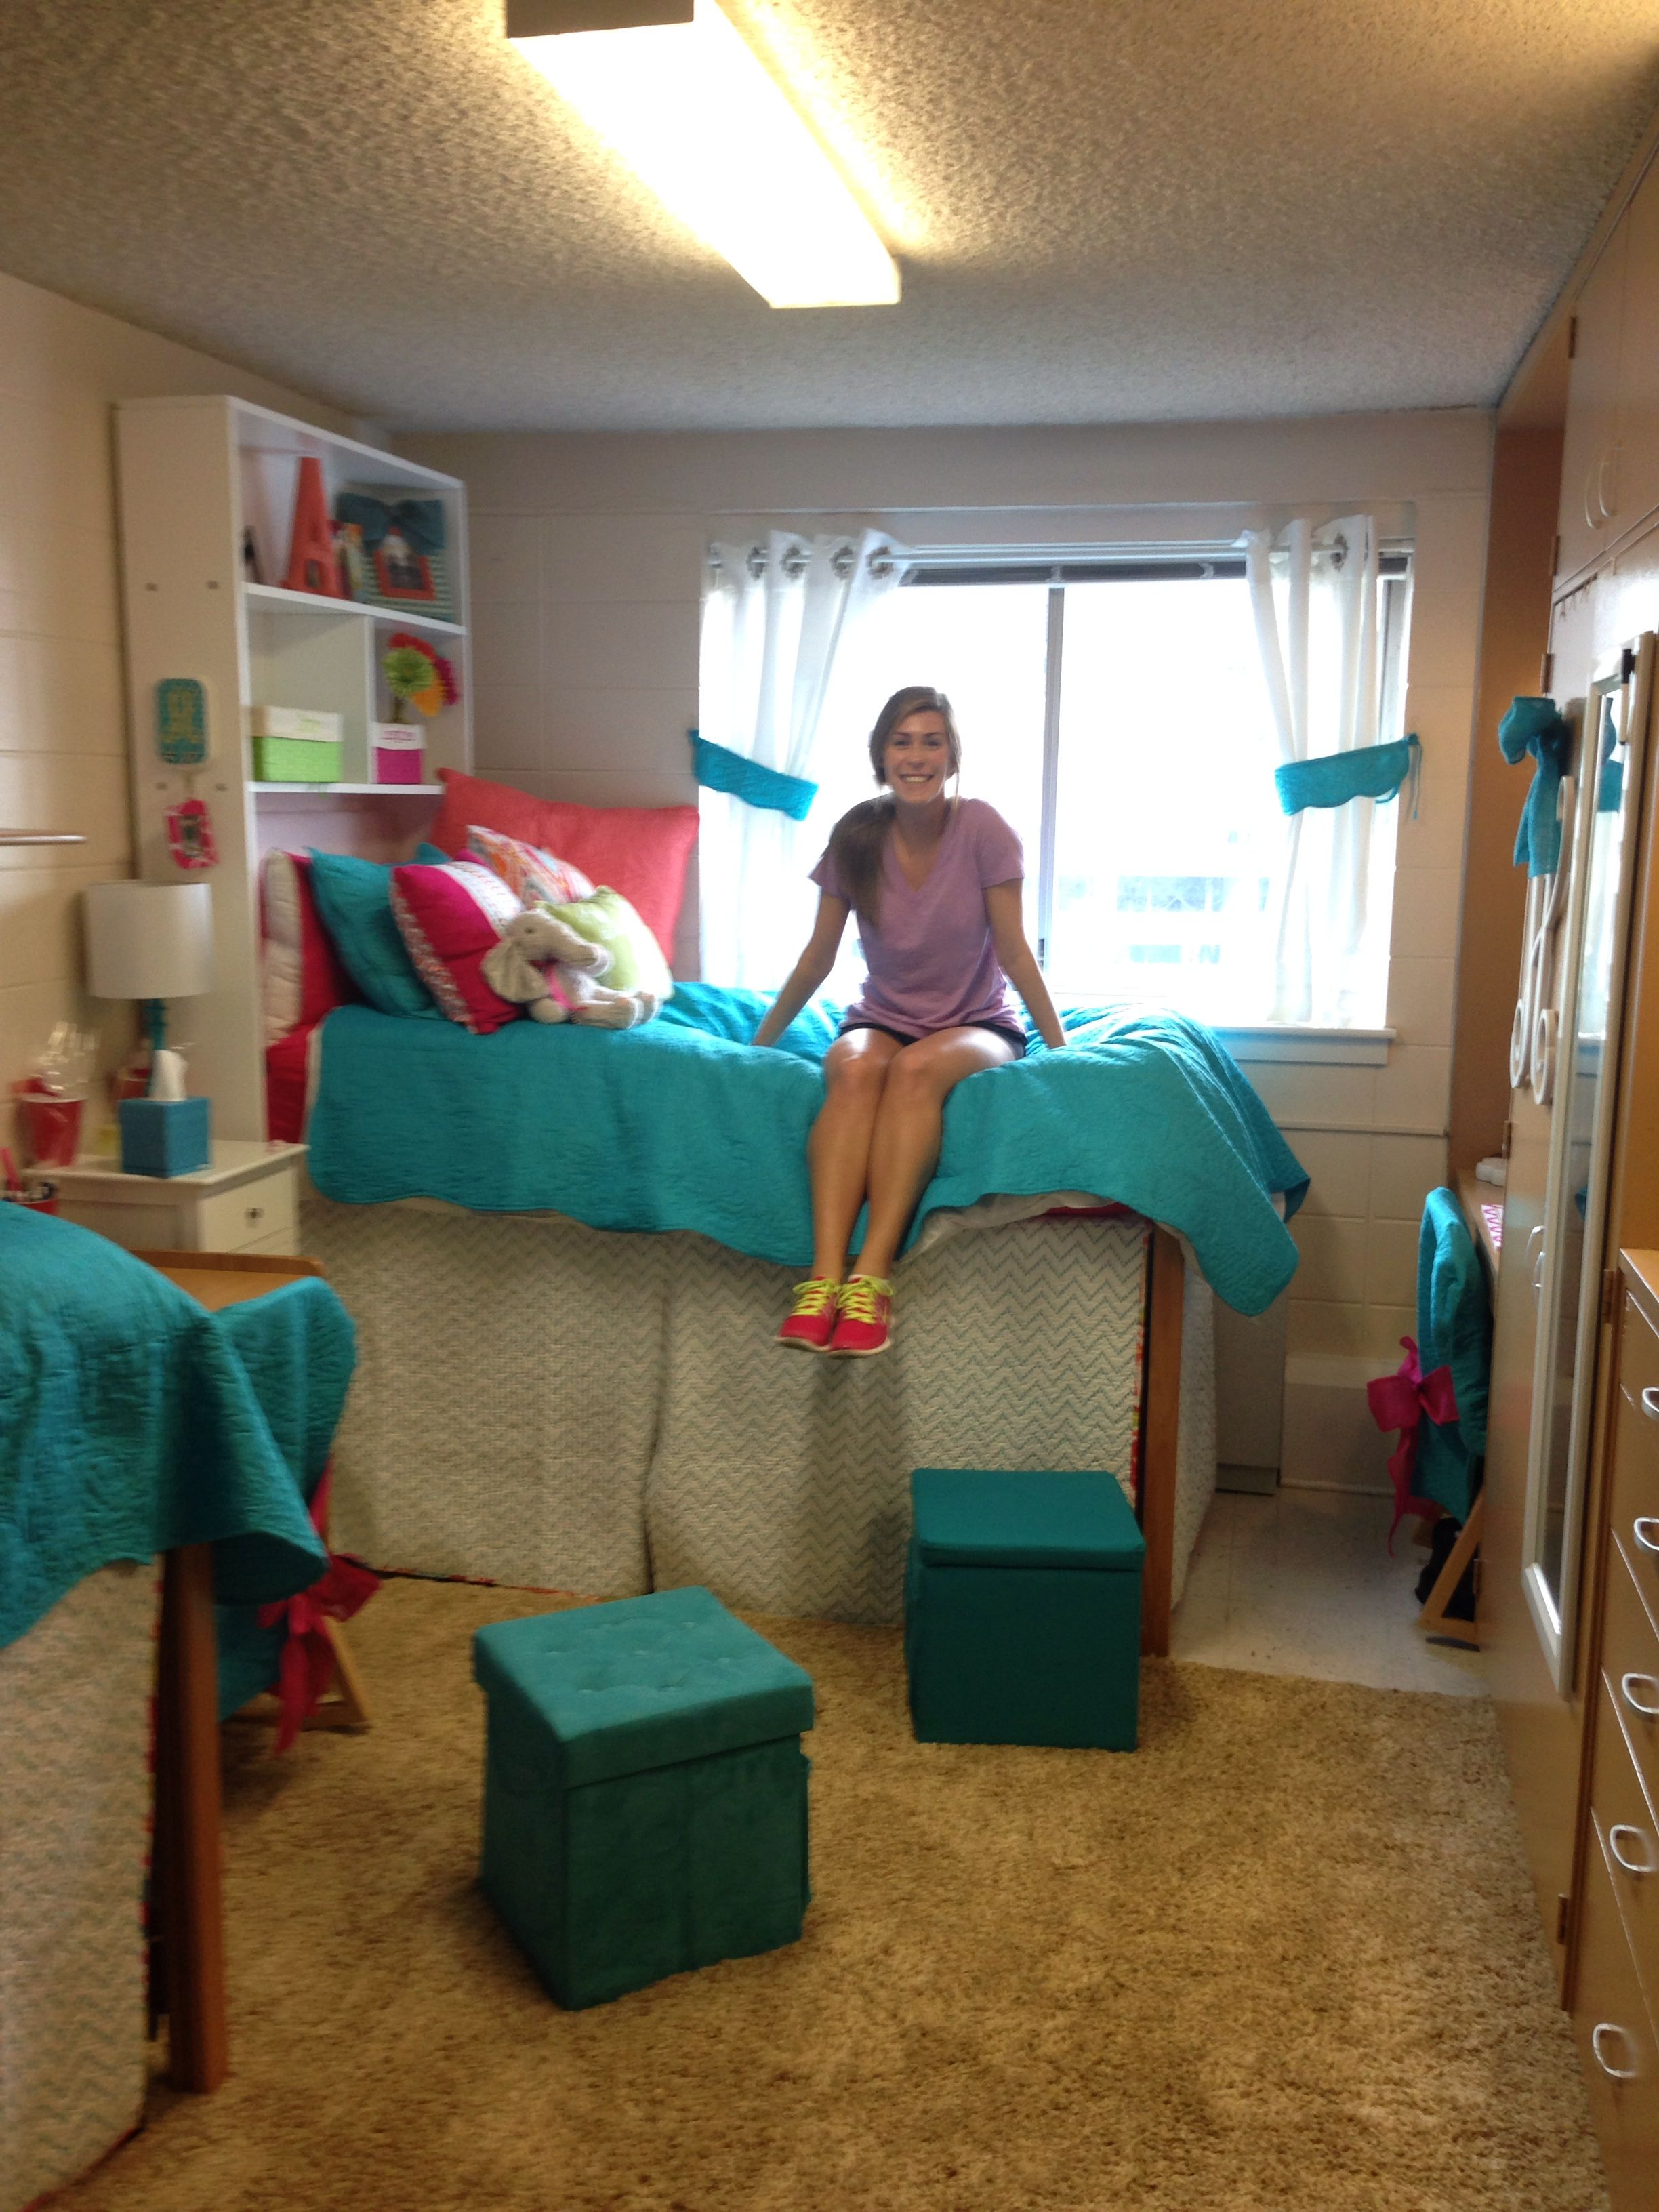 U of Alabama tutwiler dorm room | Dorm | Dorm room, Dorm